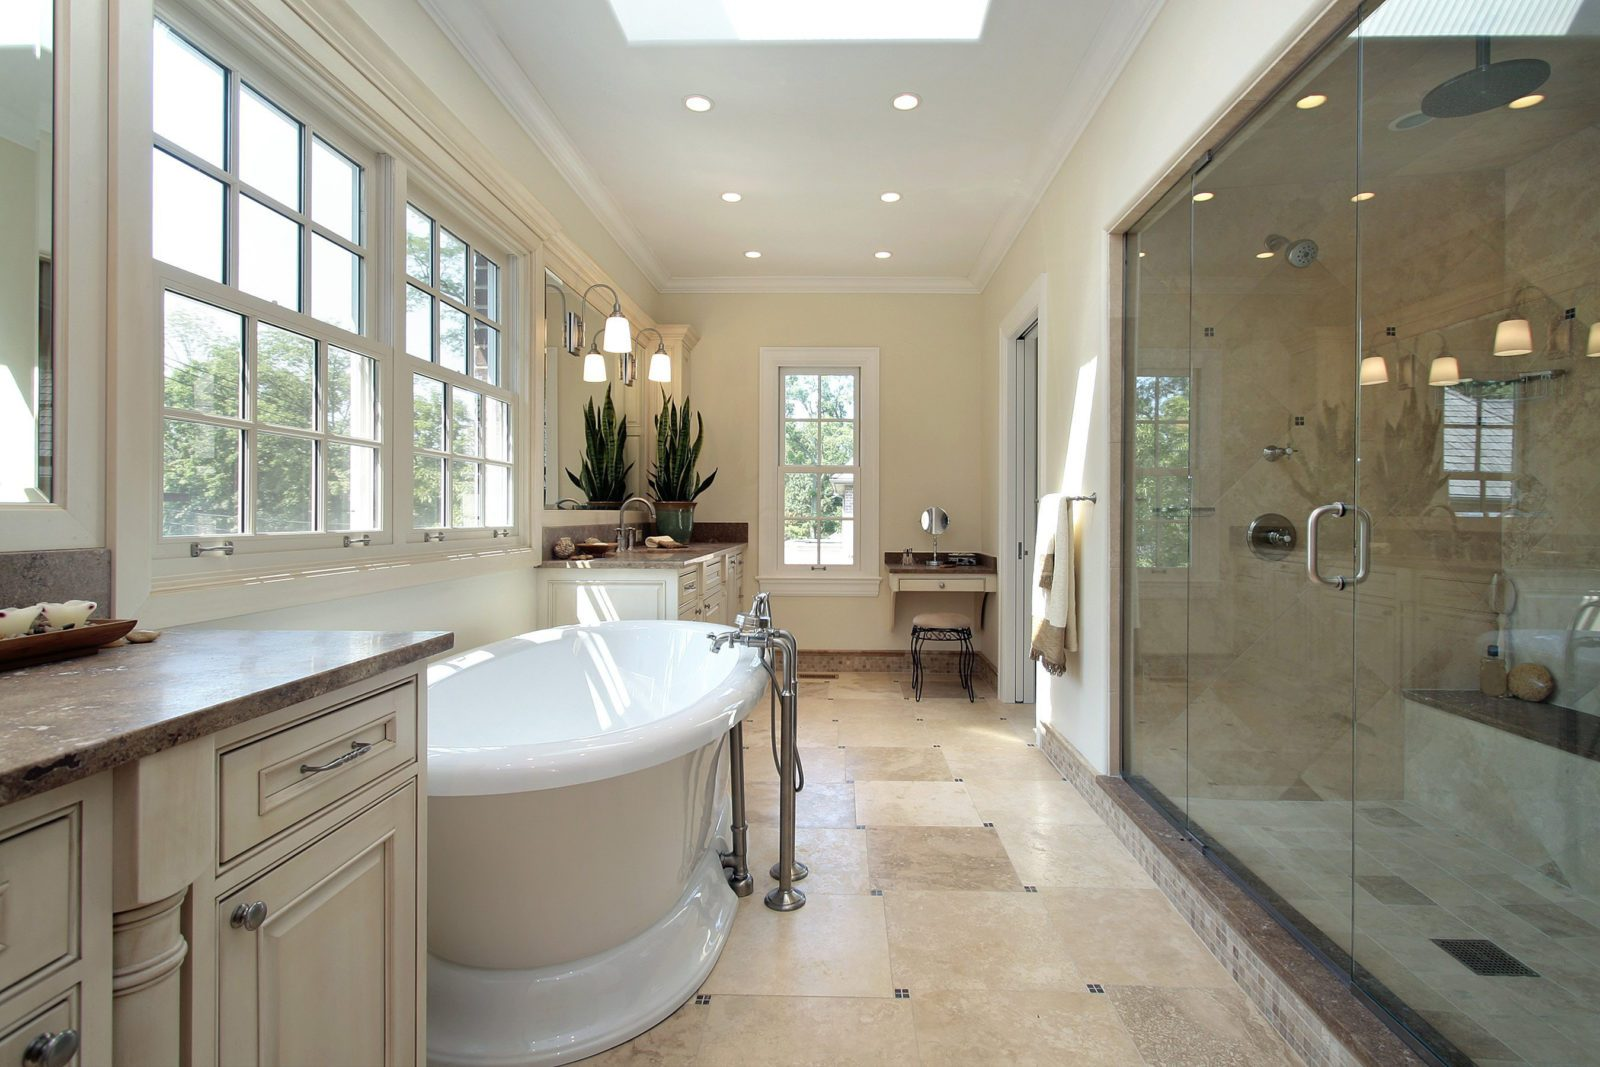 Bathroom remodel bay easy construction - Remodel bathroom designs ...